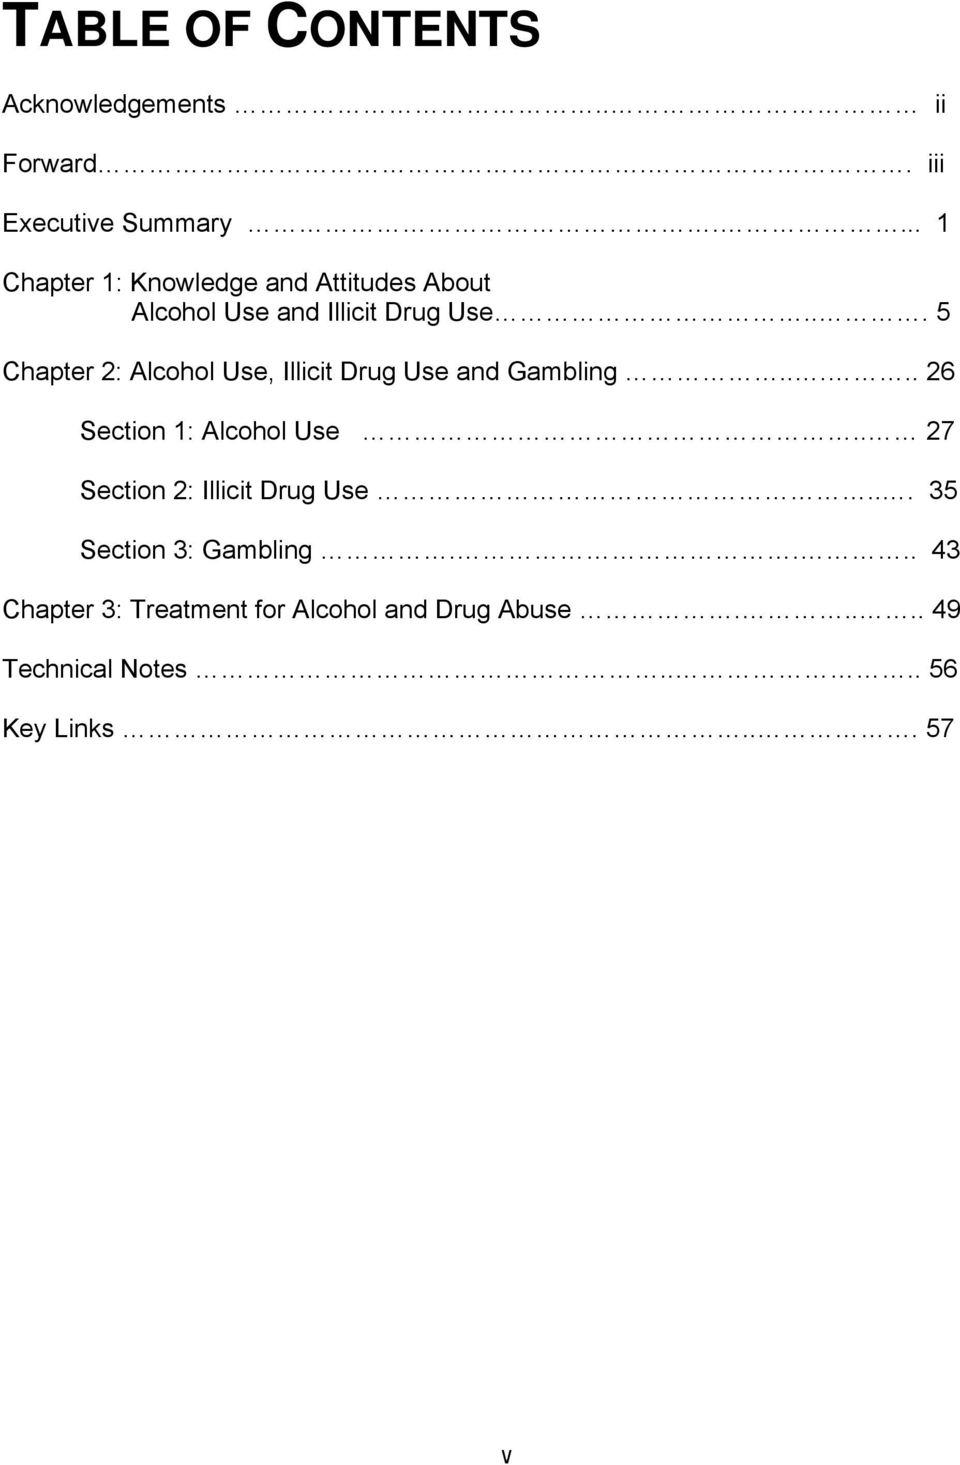 .. 5 Chapter 2: Alcohol Use, Illicit Drug Use and Gambling..... 26 Section 1: Alcohol Use.